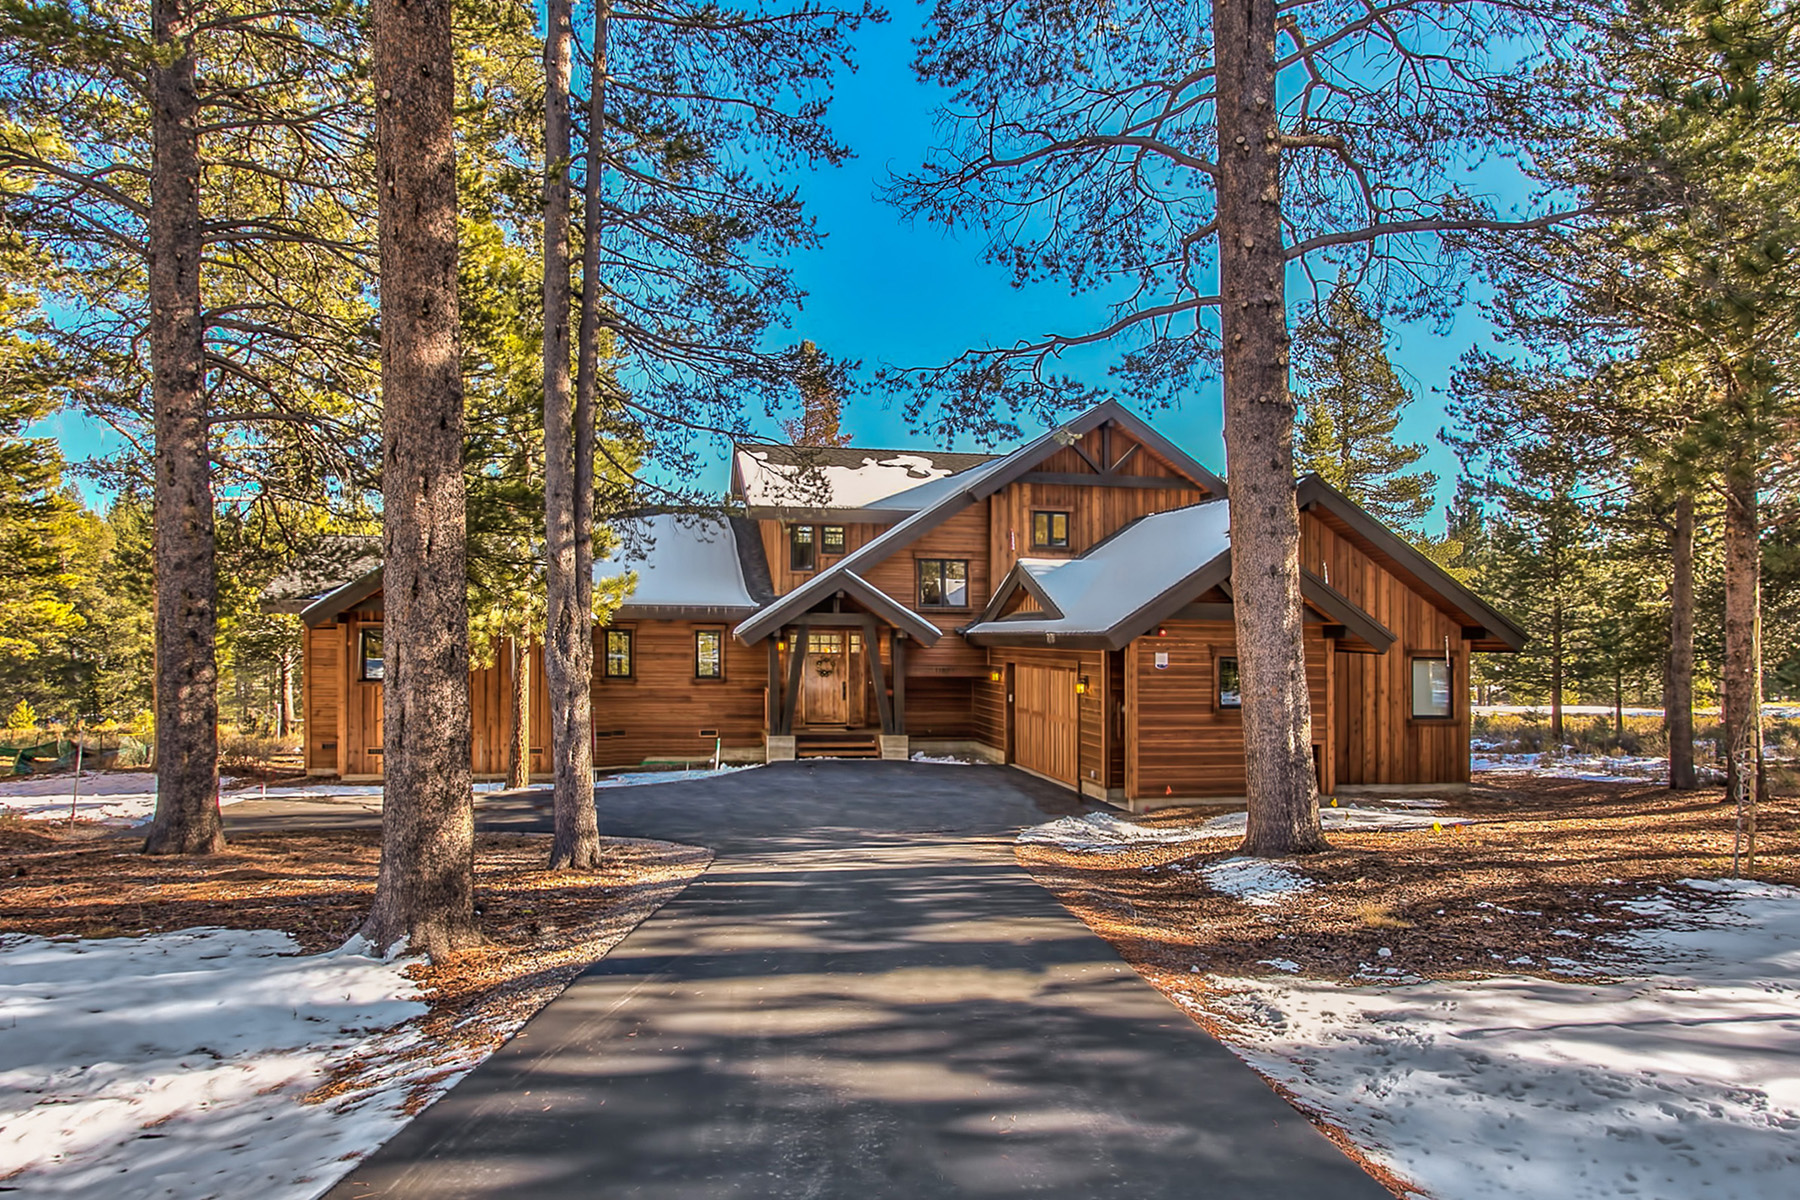 Single Family Home for Active at 11571 Ghirard Road Truckee, California 96161 United States